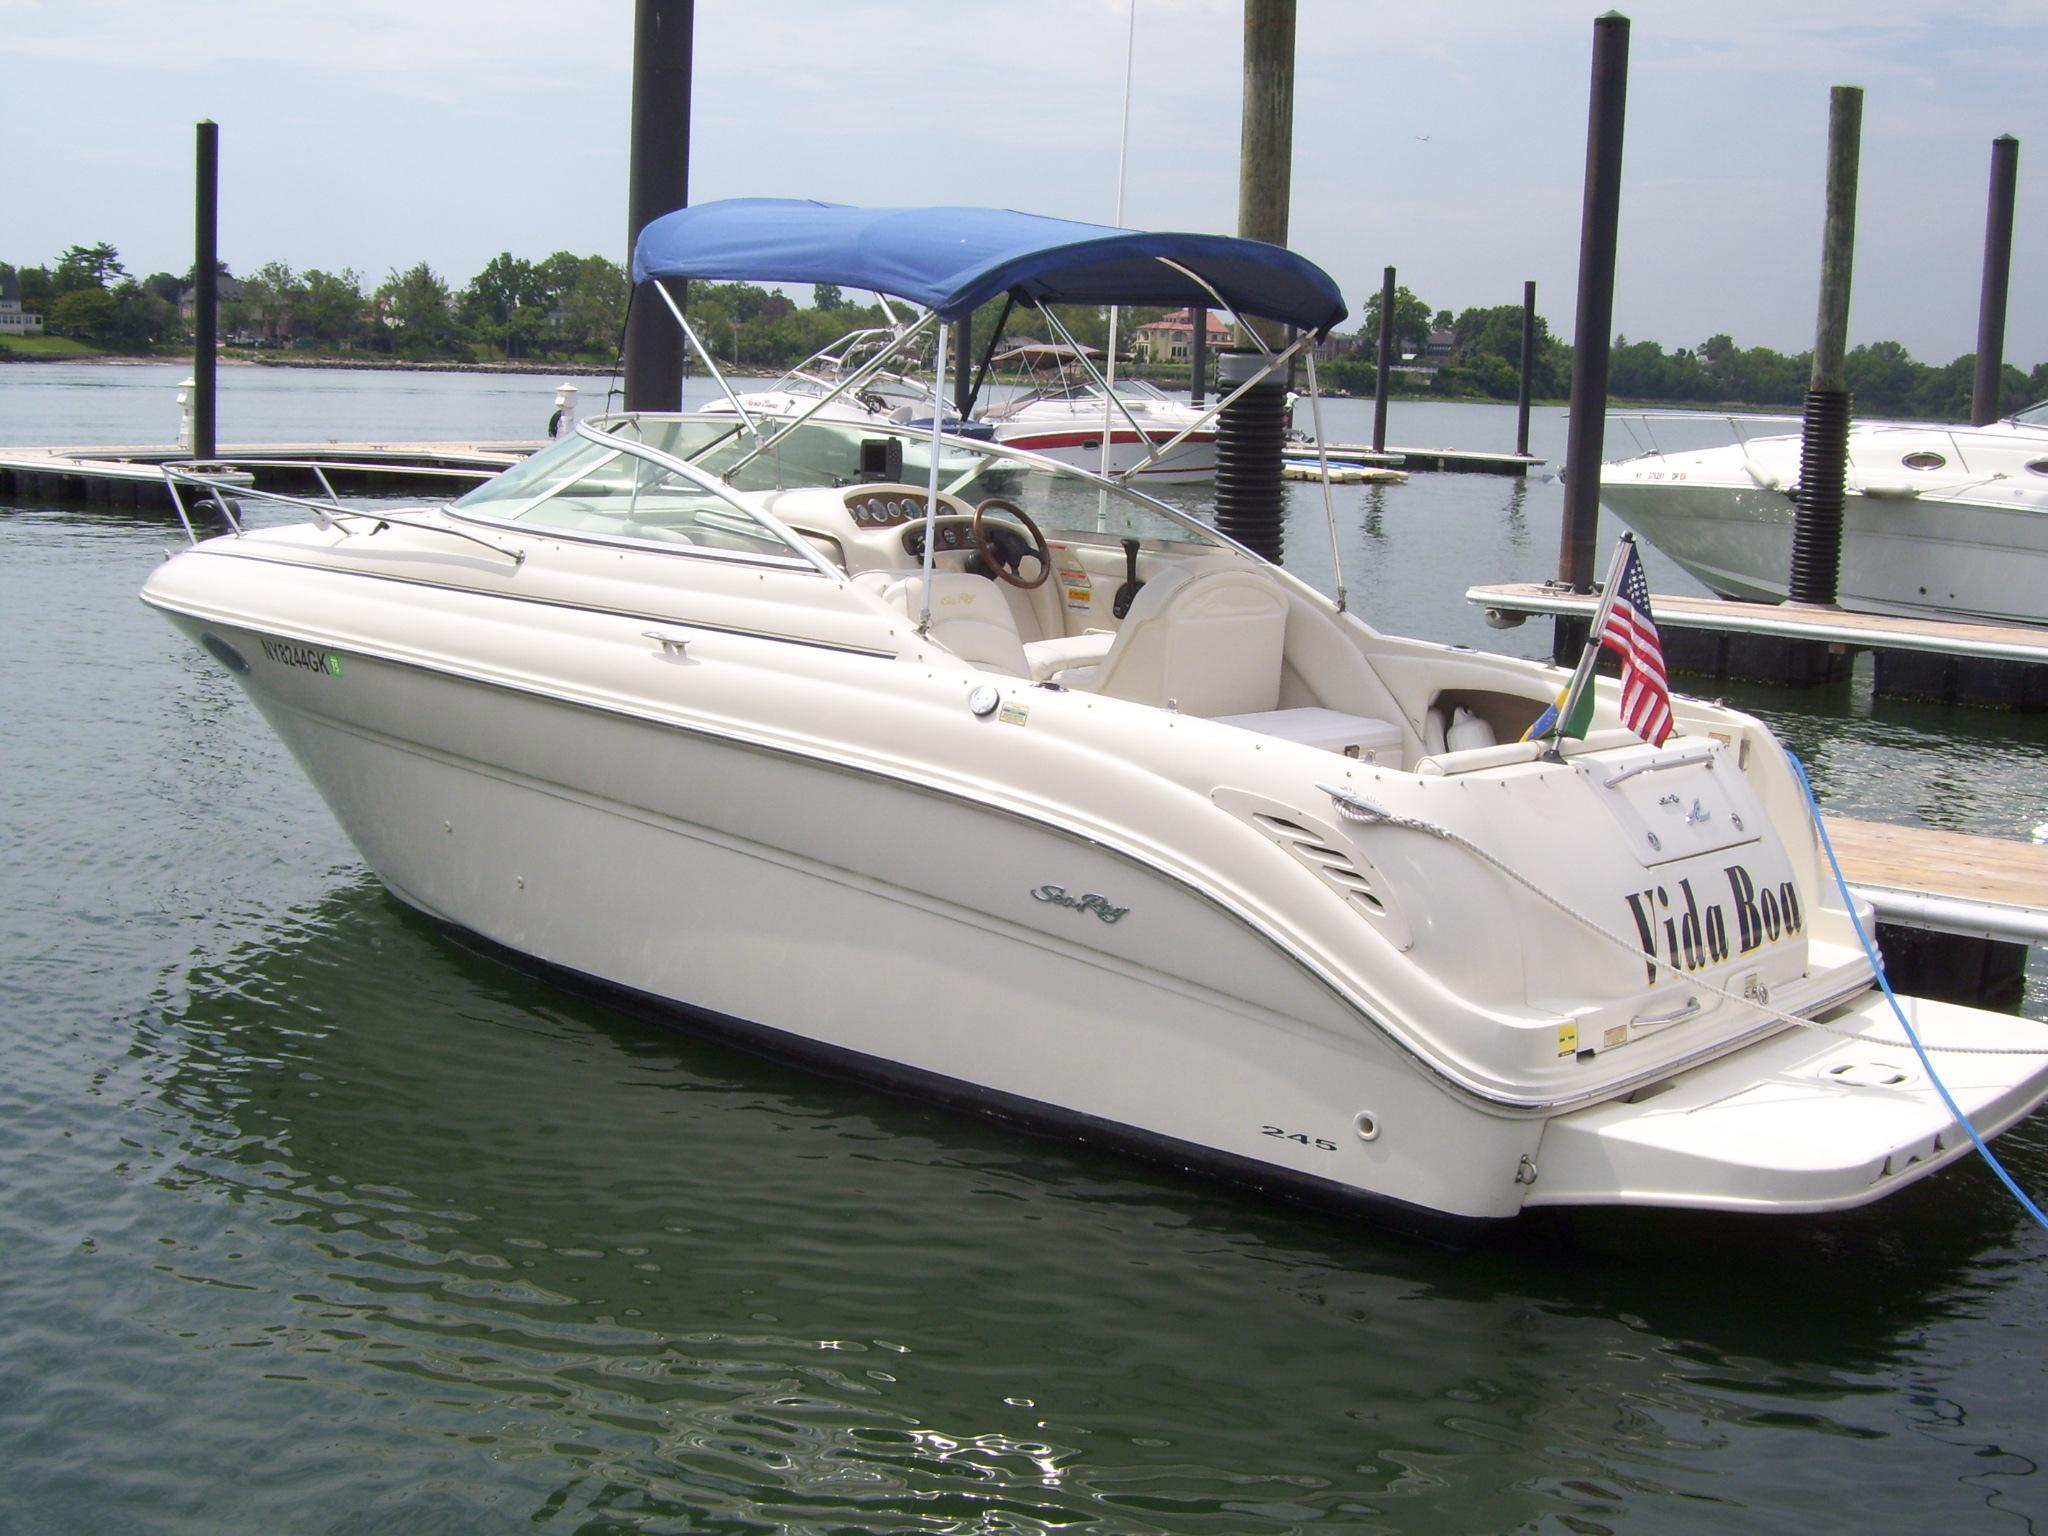 Boats For Sale Orlando >> 2001 Sea Ray 245 Weekender Power Boat For Sale - www.yachtworld.com